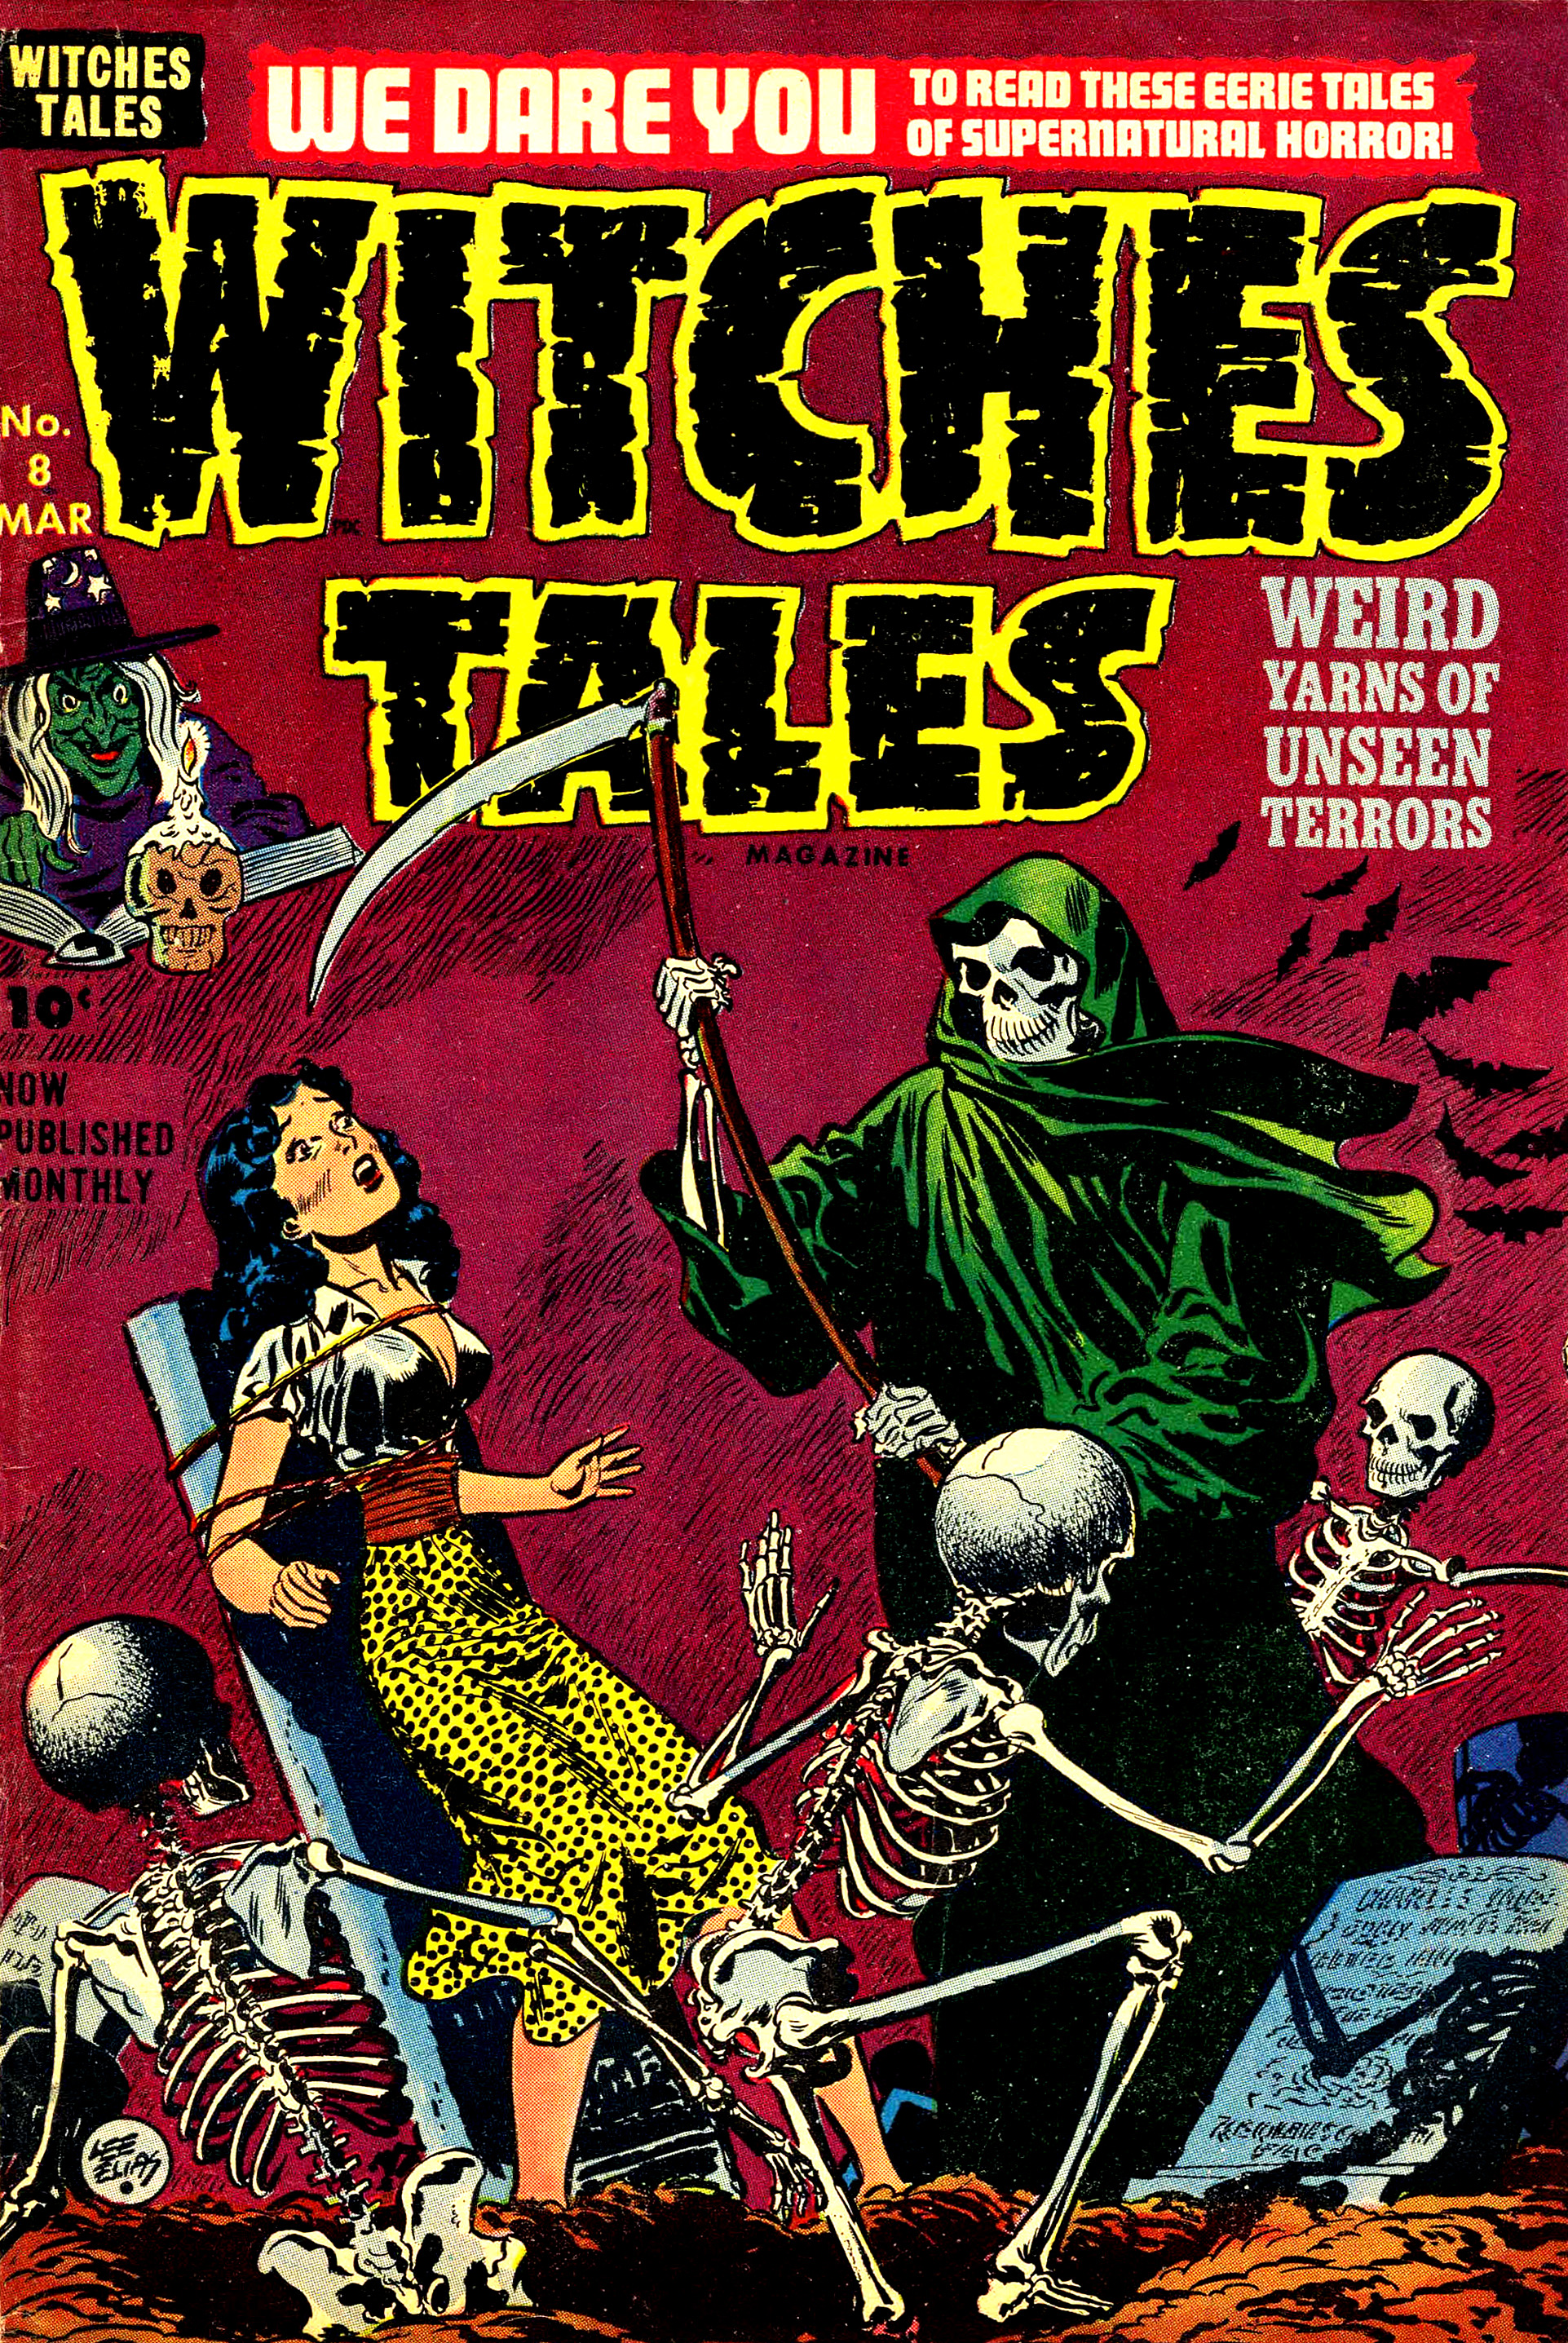 Witches Tales #8, Lee Elias Cover (Harvey, 1952)